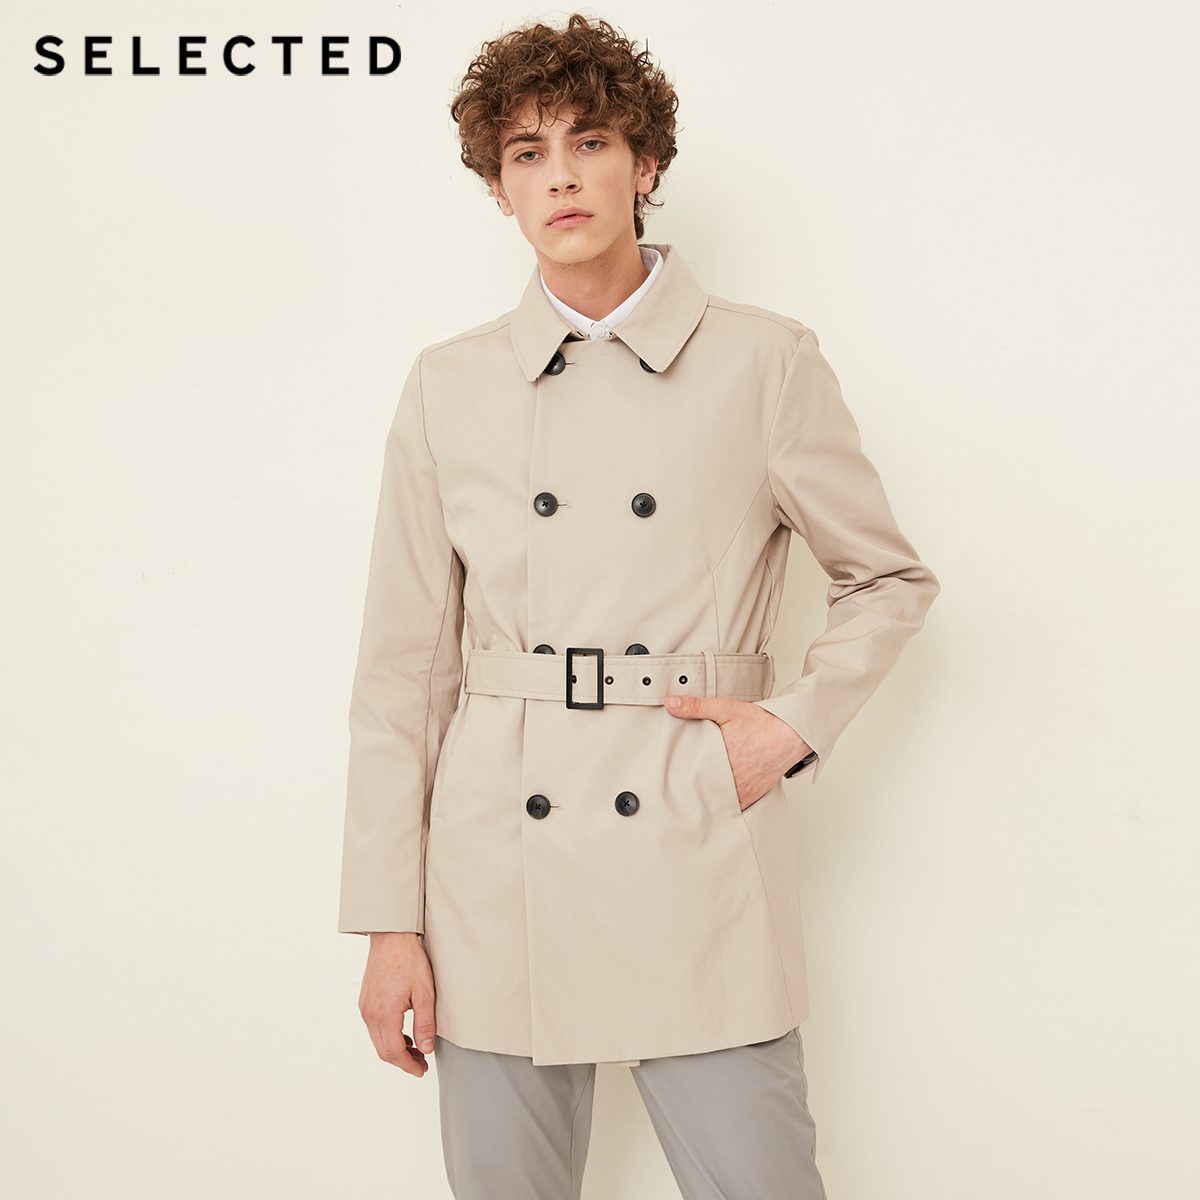 SELECTED New Cotton Double-breasted Windbreaker Fashion Cloak Clothes Lapel Business Long Coat Men's Jacket T | 4183OM502